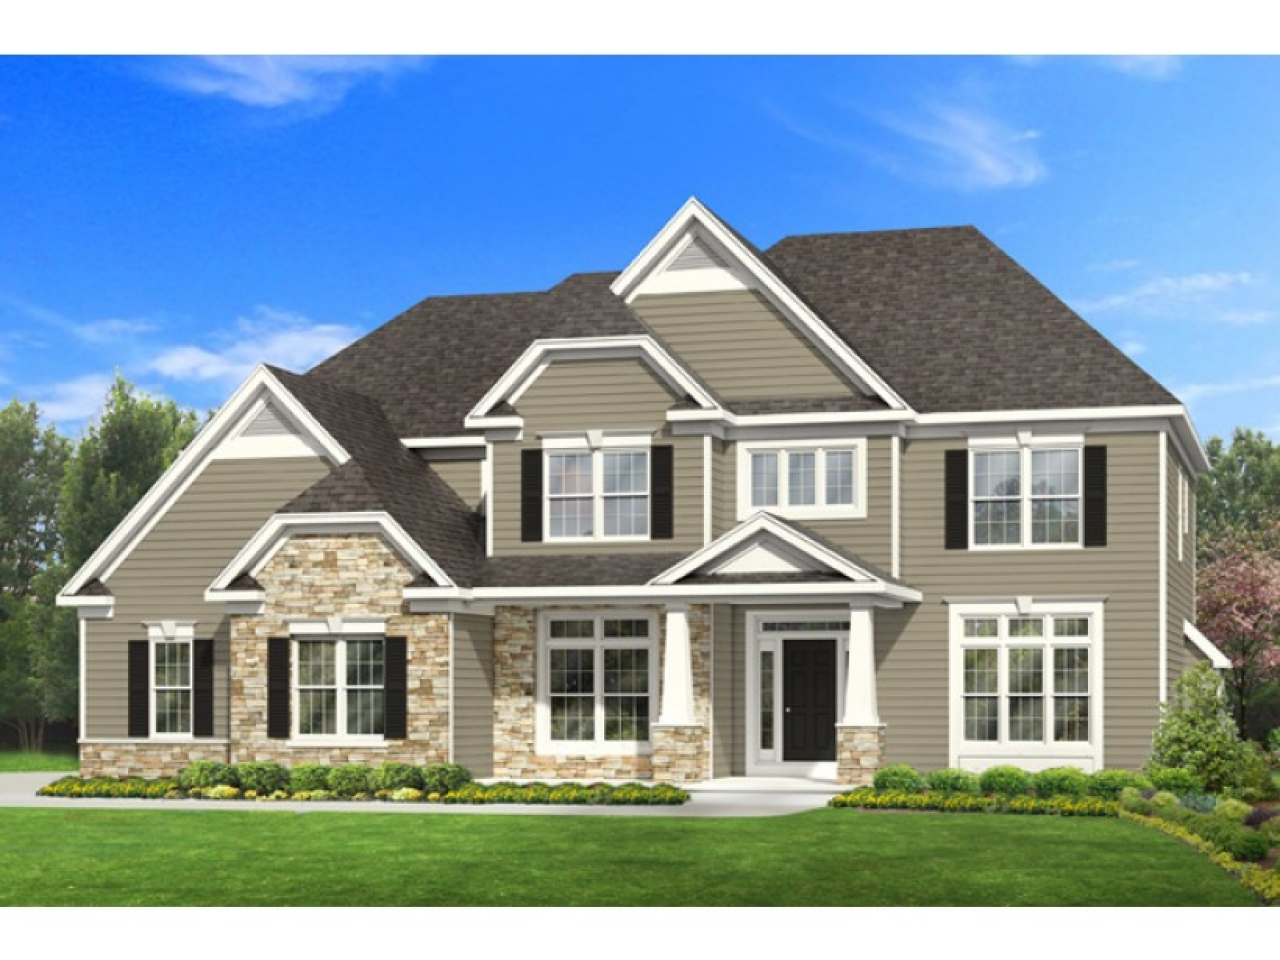 Long lots blueprints 3 bedroom 1 story 2 story 4 bedroom for Two story bedroom